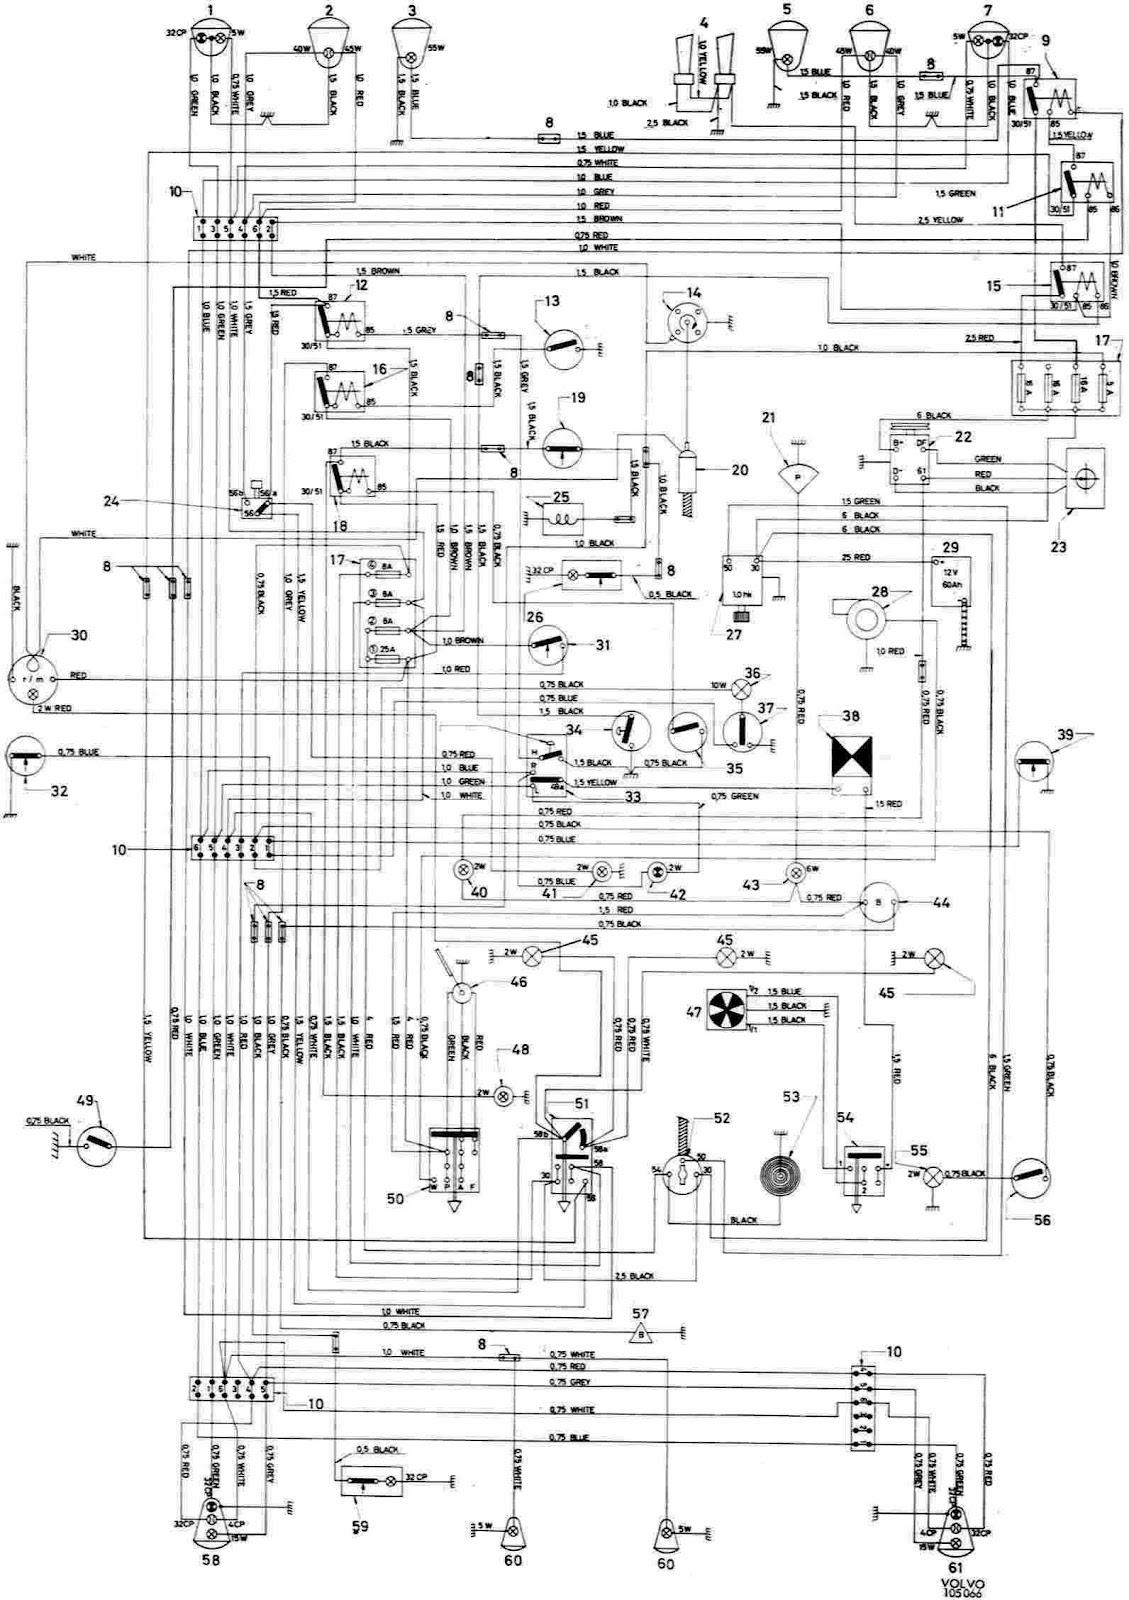 Volvo+123+GT+Complete+Wiring+Diagram 2005 volvo s40 wiring diagram volvo s40 steering diagram \u2022 wiring volvo xc90 stereo wiring diagram at crackthecode.co